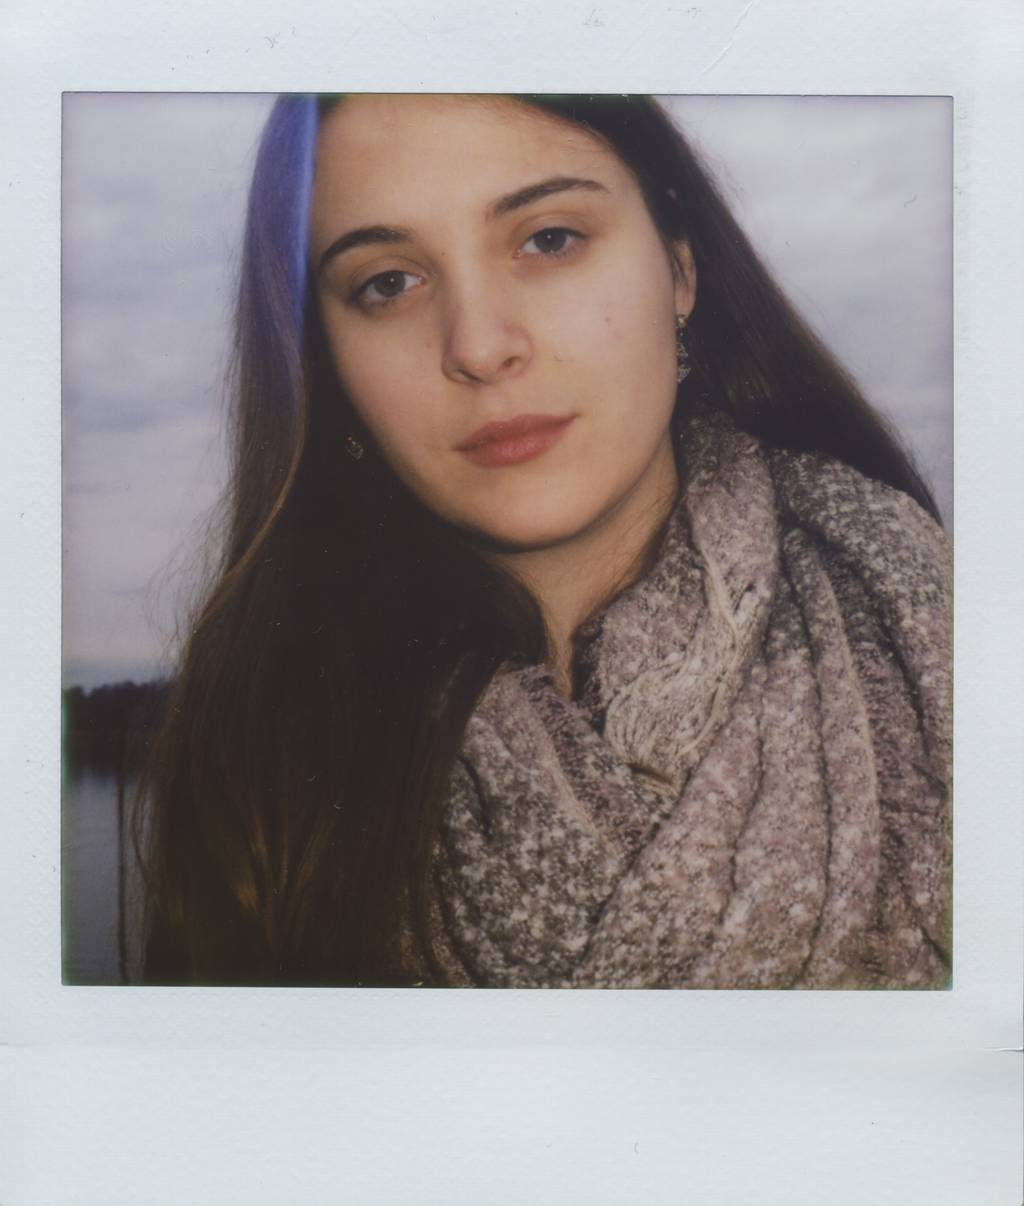 LomoAmigo Reto Baer on the Magic of Instant Photography and Square Format